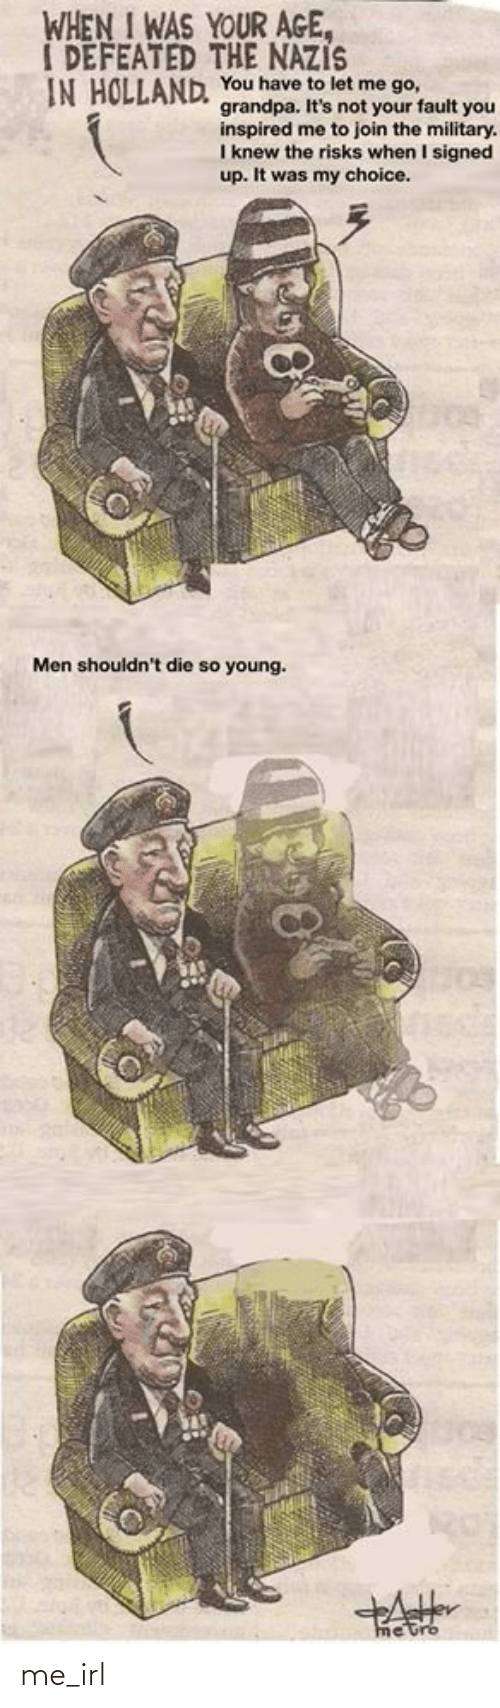 When I Was Your Age: WHEN I WAS YOUR AGE,  I DEFEATED THE NAZIS  IN HOLLAND, You have to let me go,  grandpa. It's not your fault you  inspired me to join the military.  I knew the risks when I signed  up. It was my choice.  Men shouldn't die so young.  me trb me_irl